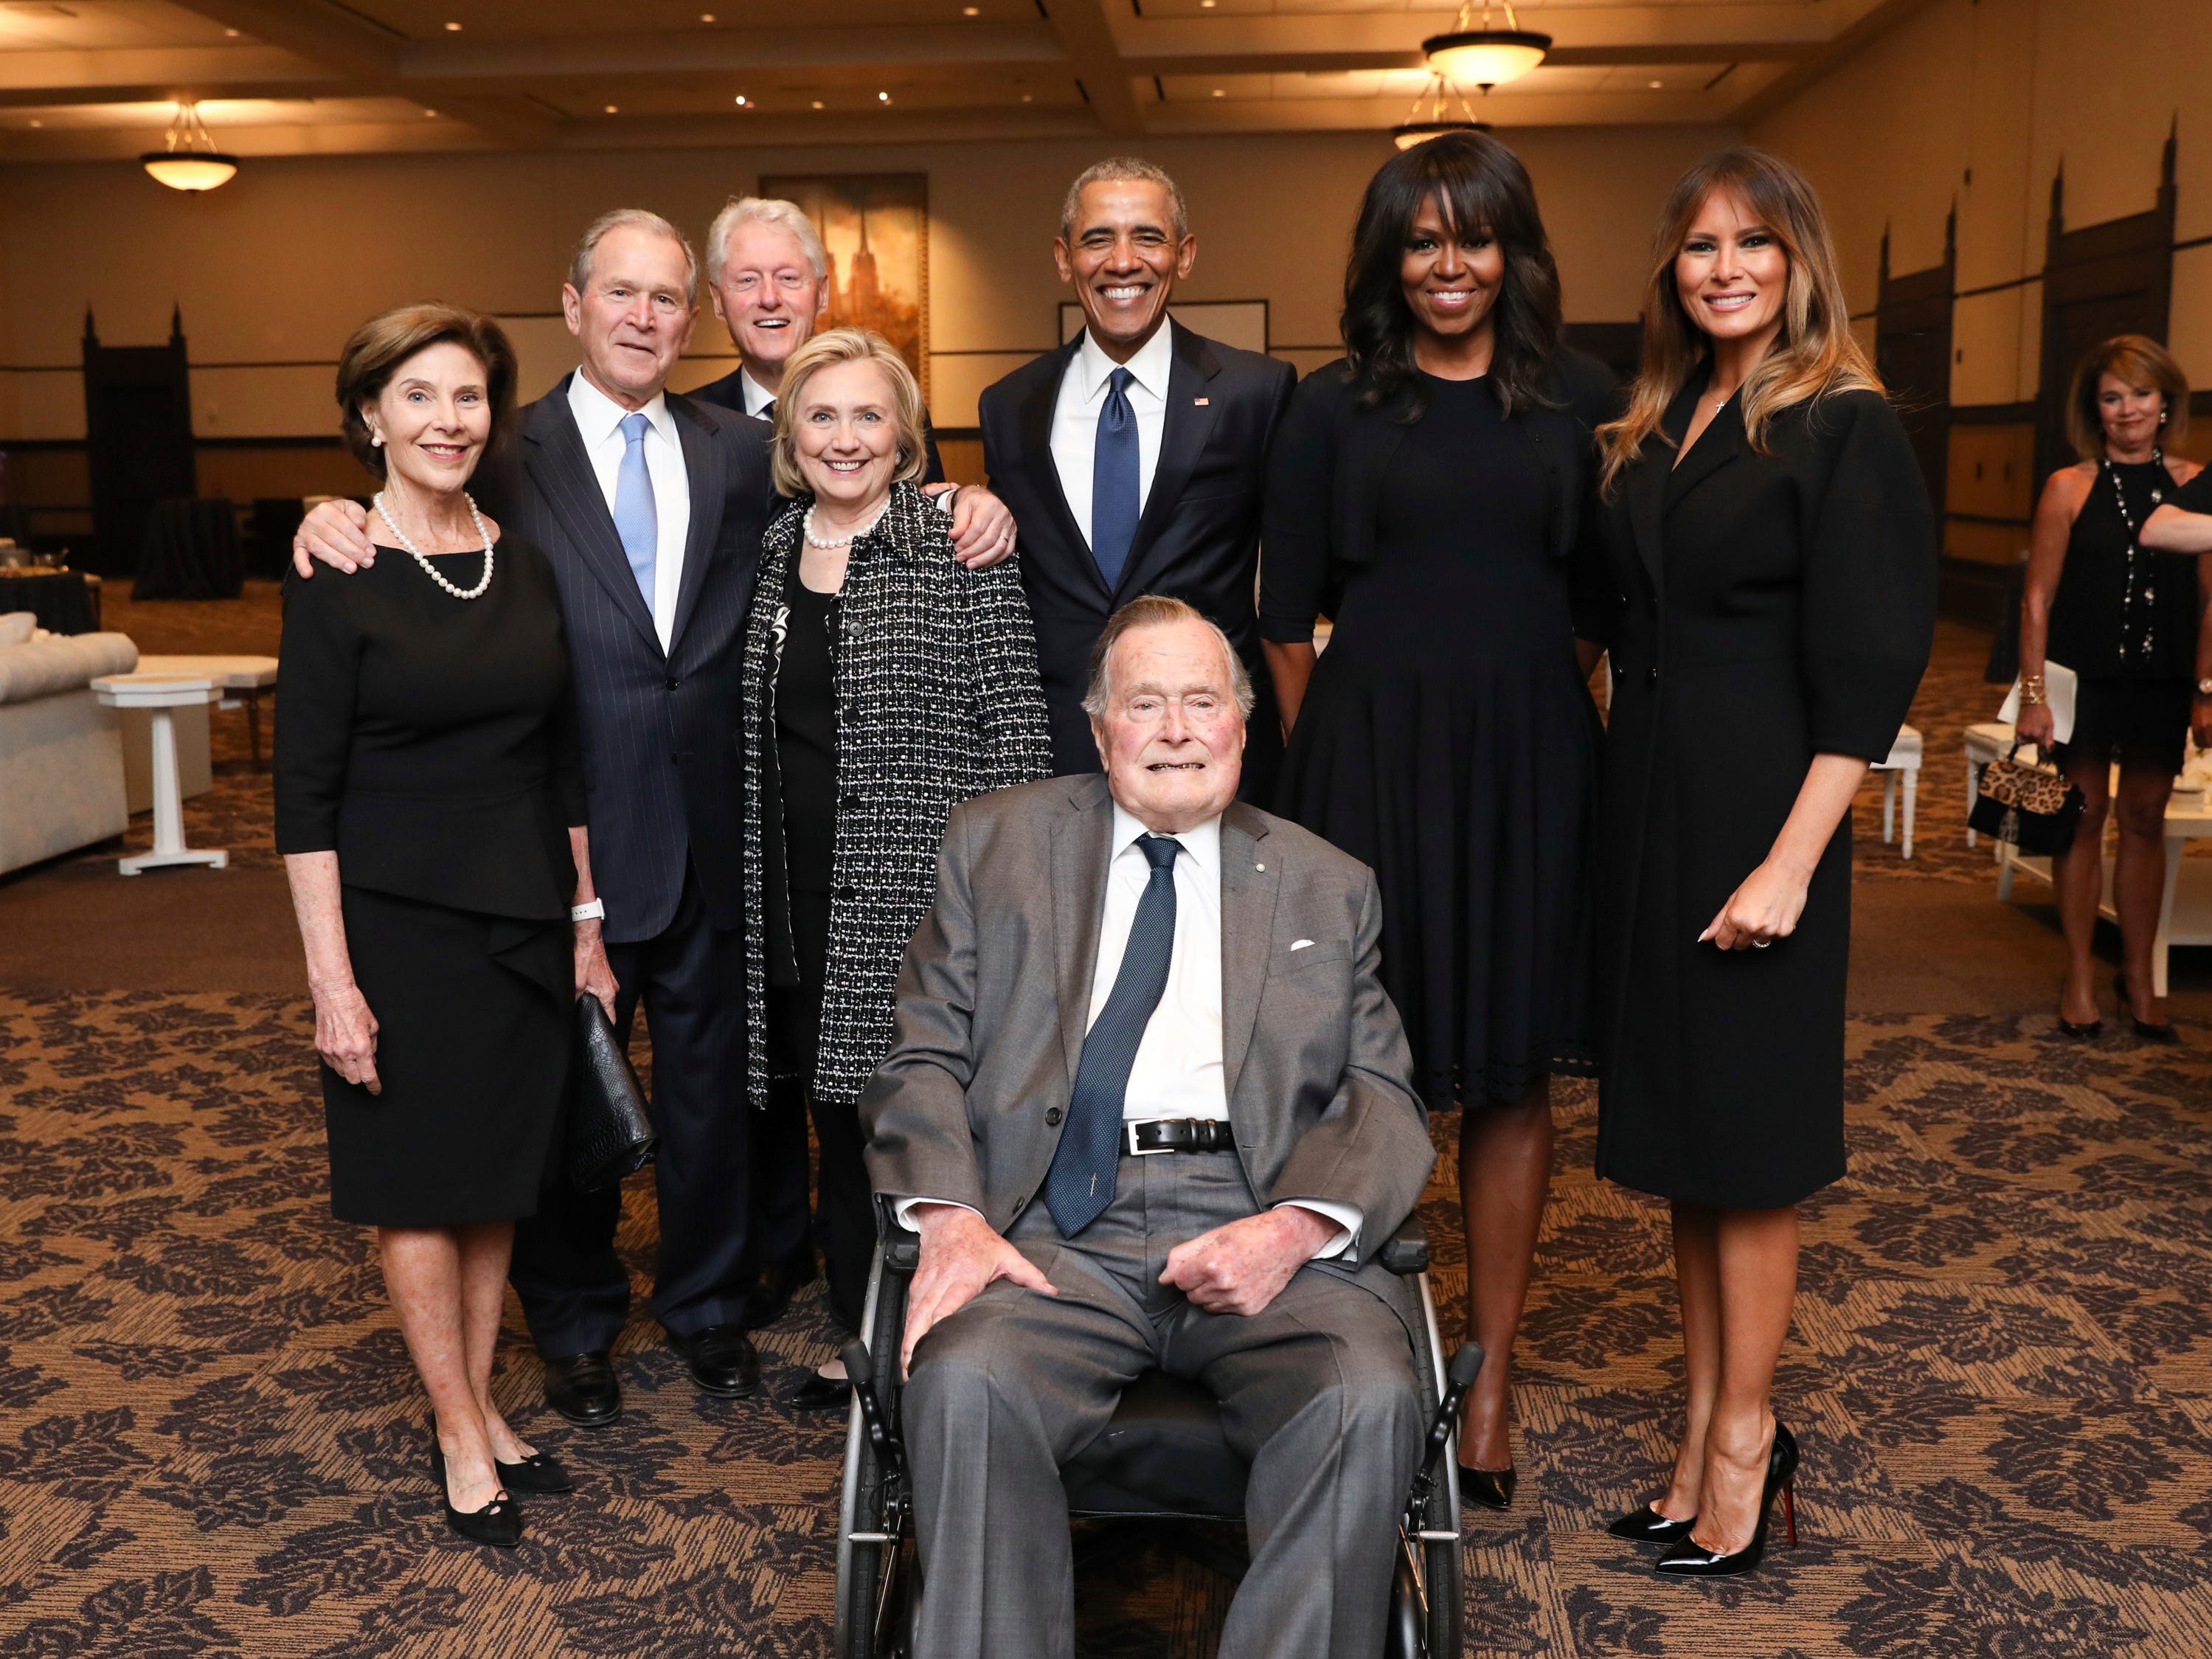 This Saturday, April 21, 2018, photo provided by the Office of former U.S. President George H.W. Bush, shows Bush, front, and past presidents and first ladies Laura Bush, from left, George W. Bush, Bill Clinton, Hillary Clinton, Barack Obama, Michelle Obama and current first lady Melania Trump, in a group photo at the funeral service for former first lady Barbara Bush, in Houston.